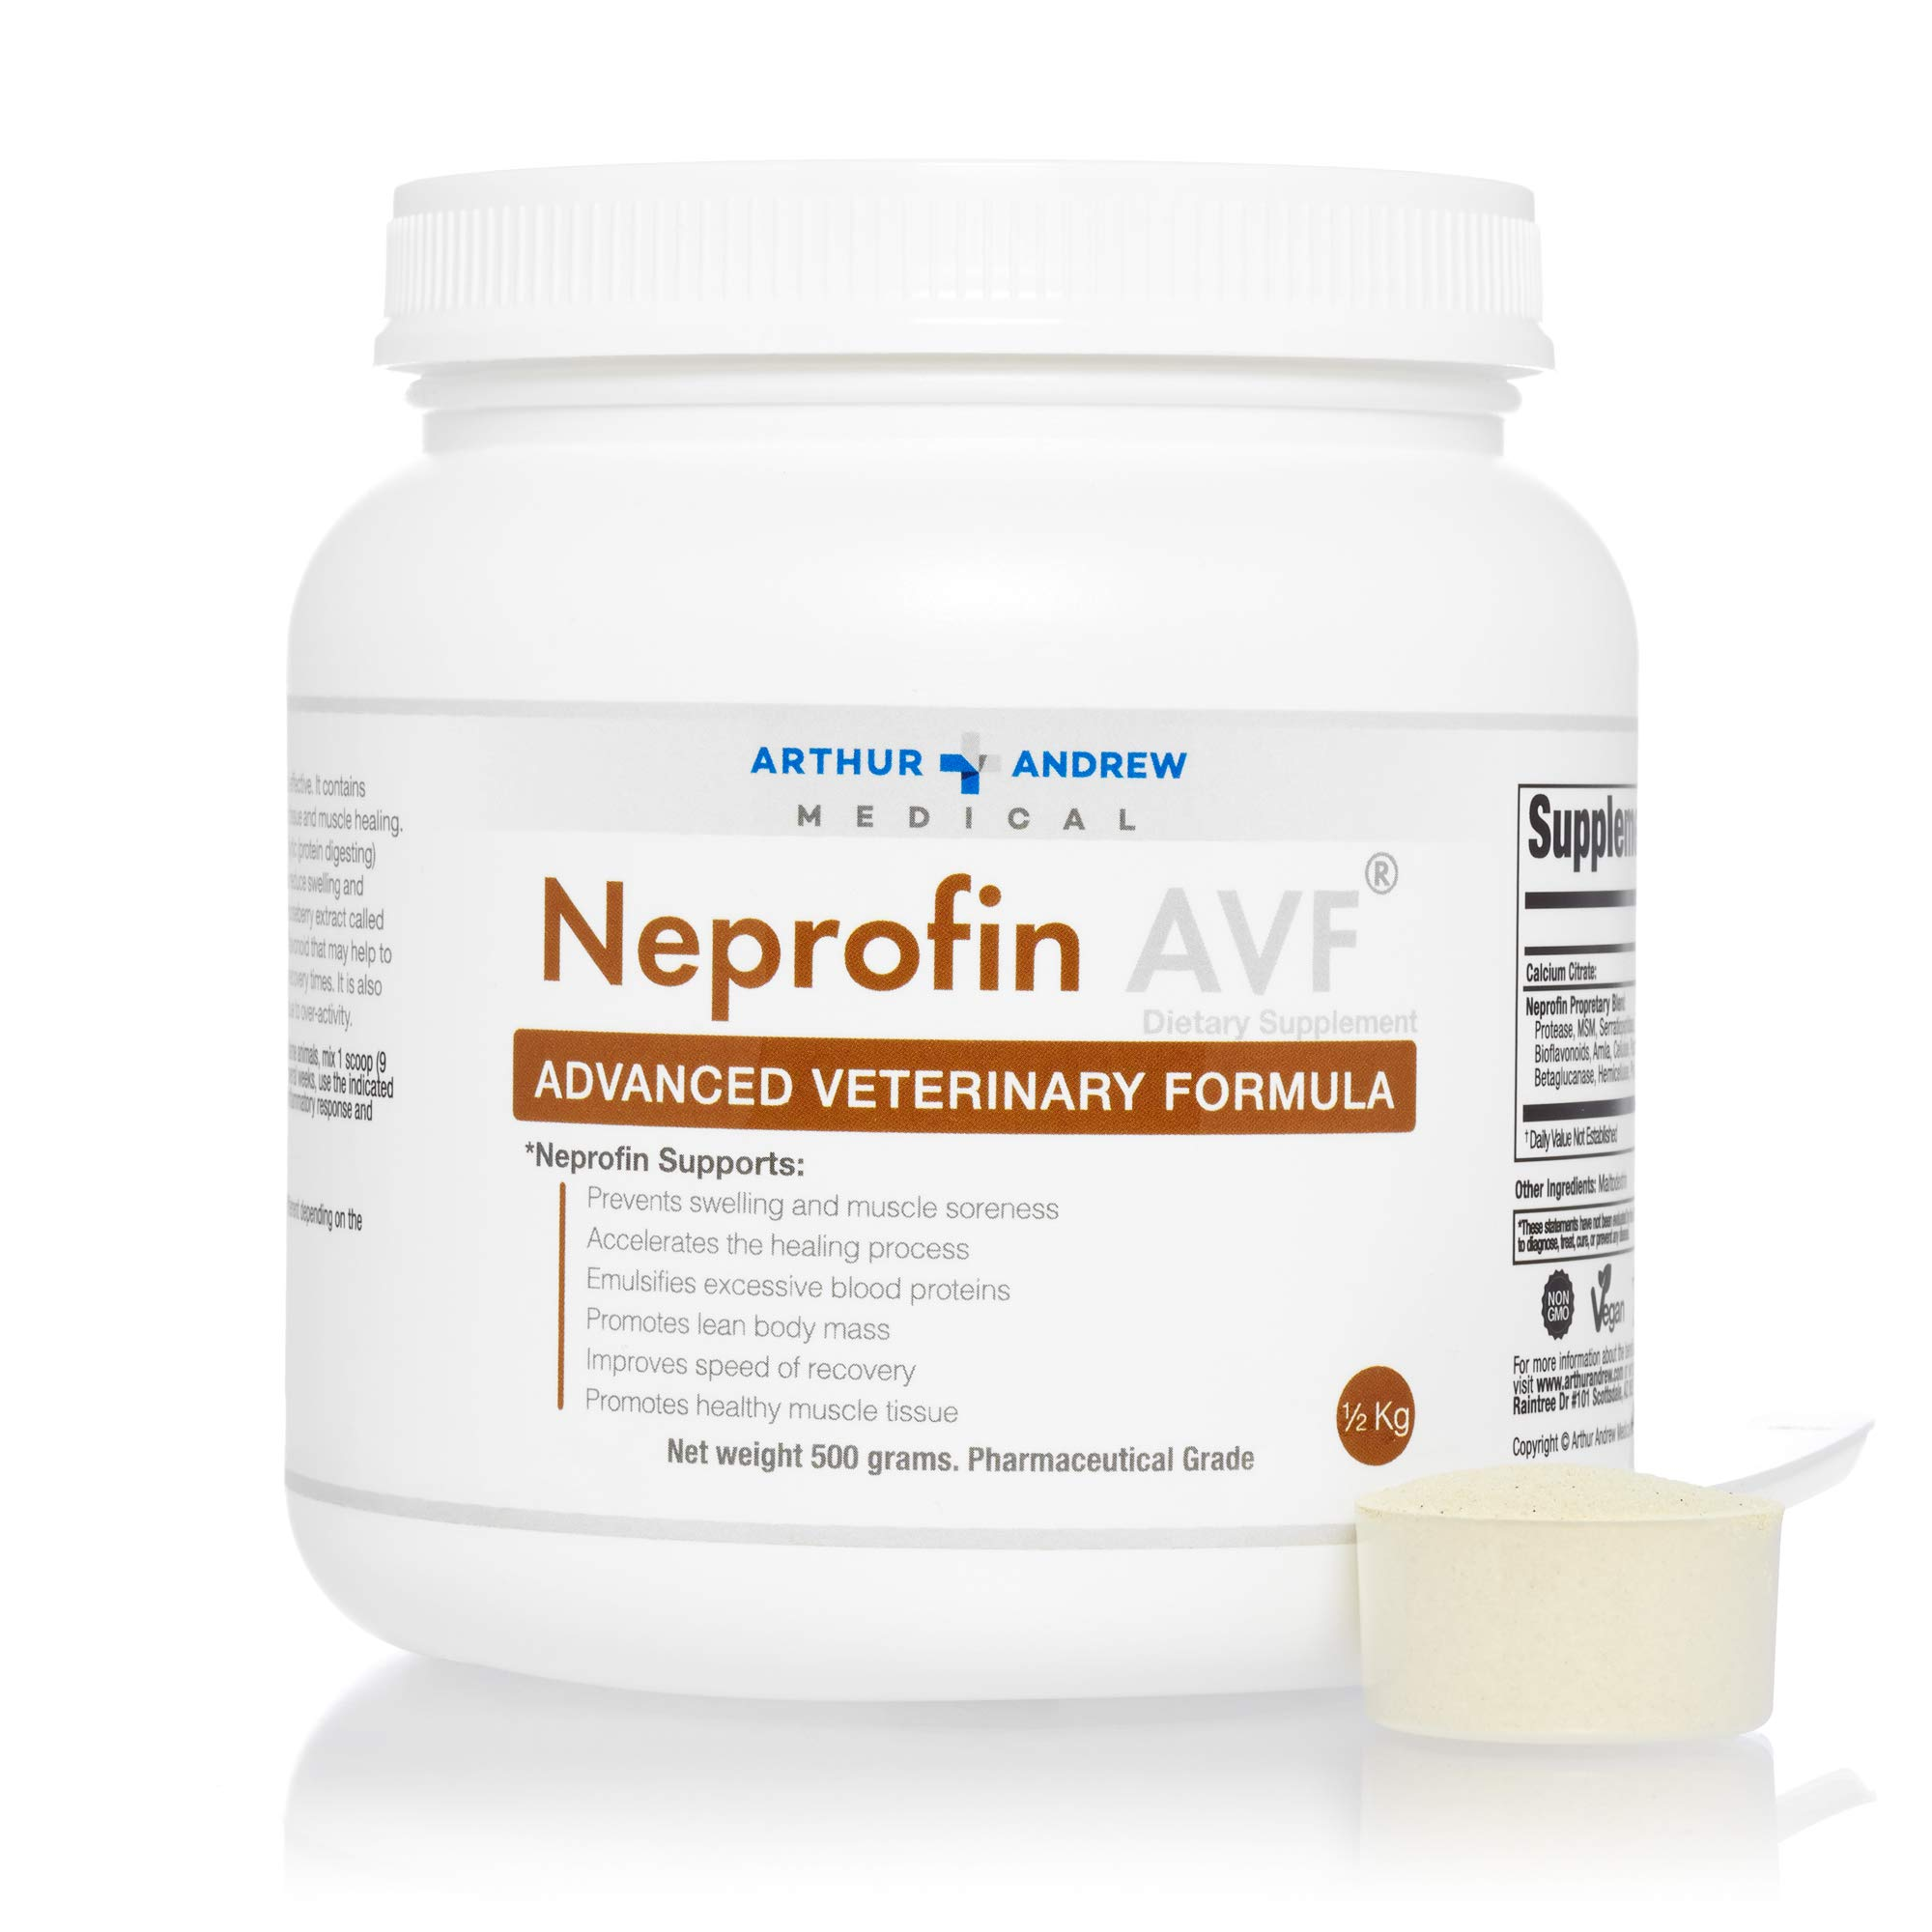 Arthur Andrew Medical - Neprofin AVF, Advanced Veterinary Formula, Large Animal Support for Speedy Recovery and Pain-Free Movement, Vegan, Non-GMO, 0.5kg Tub